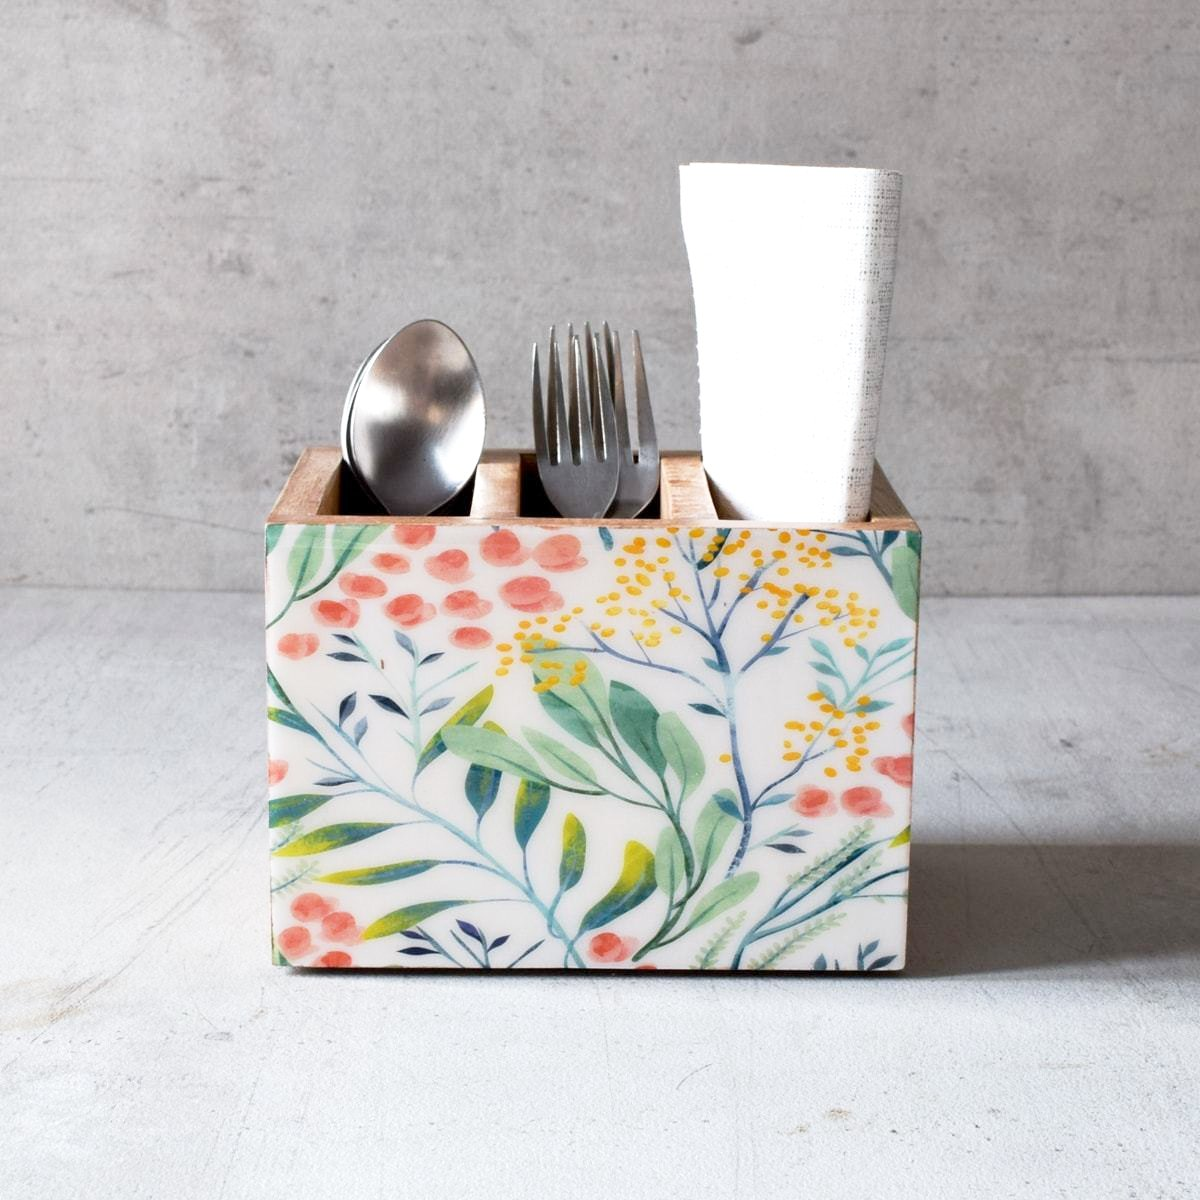 Serena Mango Wood Cutlery Holder